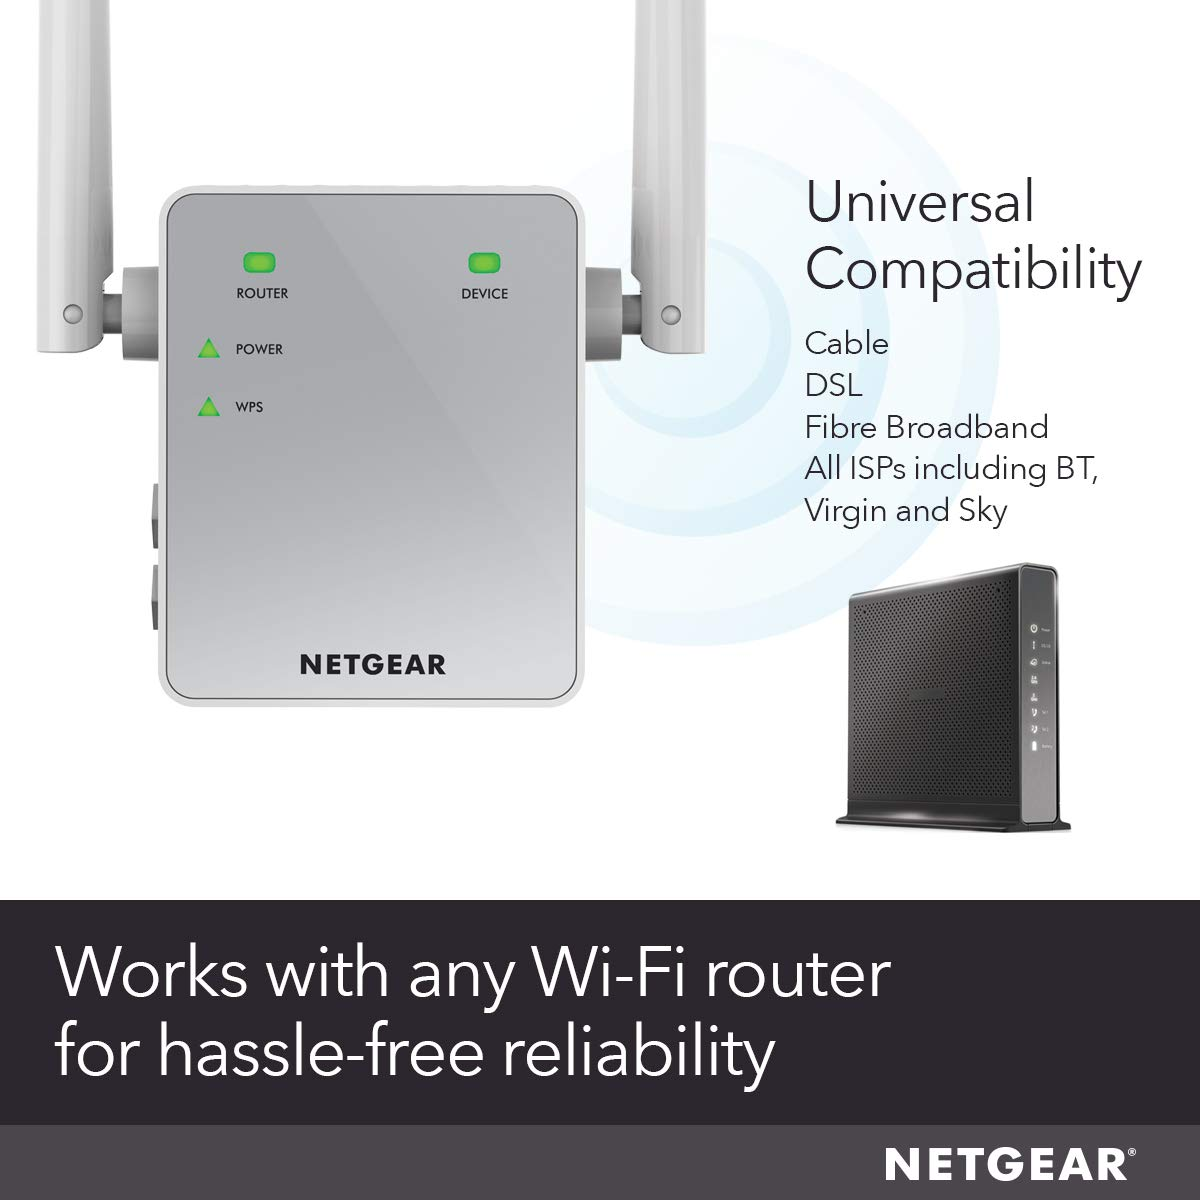 NETGEAR Wi-Fi Booster Range Extender EX3700 - Coverage Up-to 1000 sq ft and  15 Devices with AC750 Dual Band Wireless Signal Repeater (Up-to 750 Mbps)